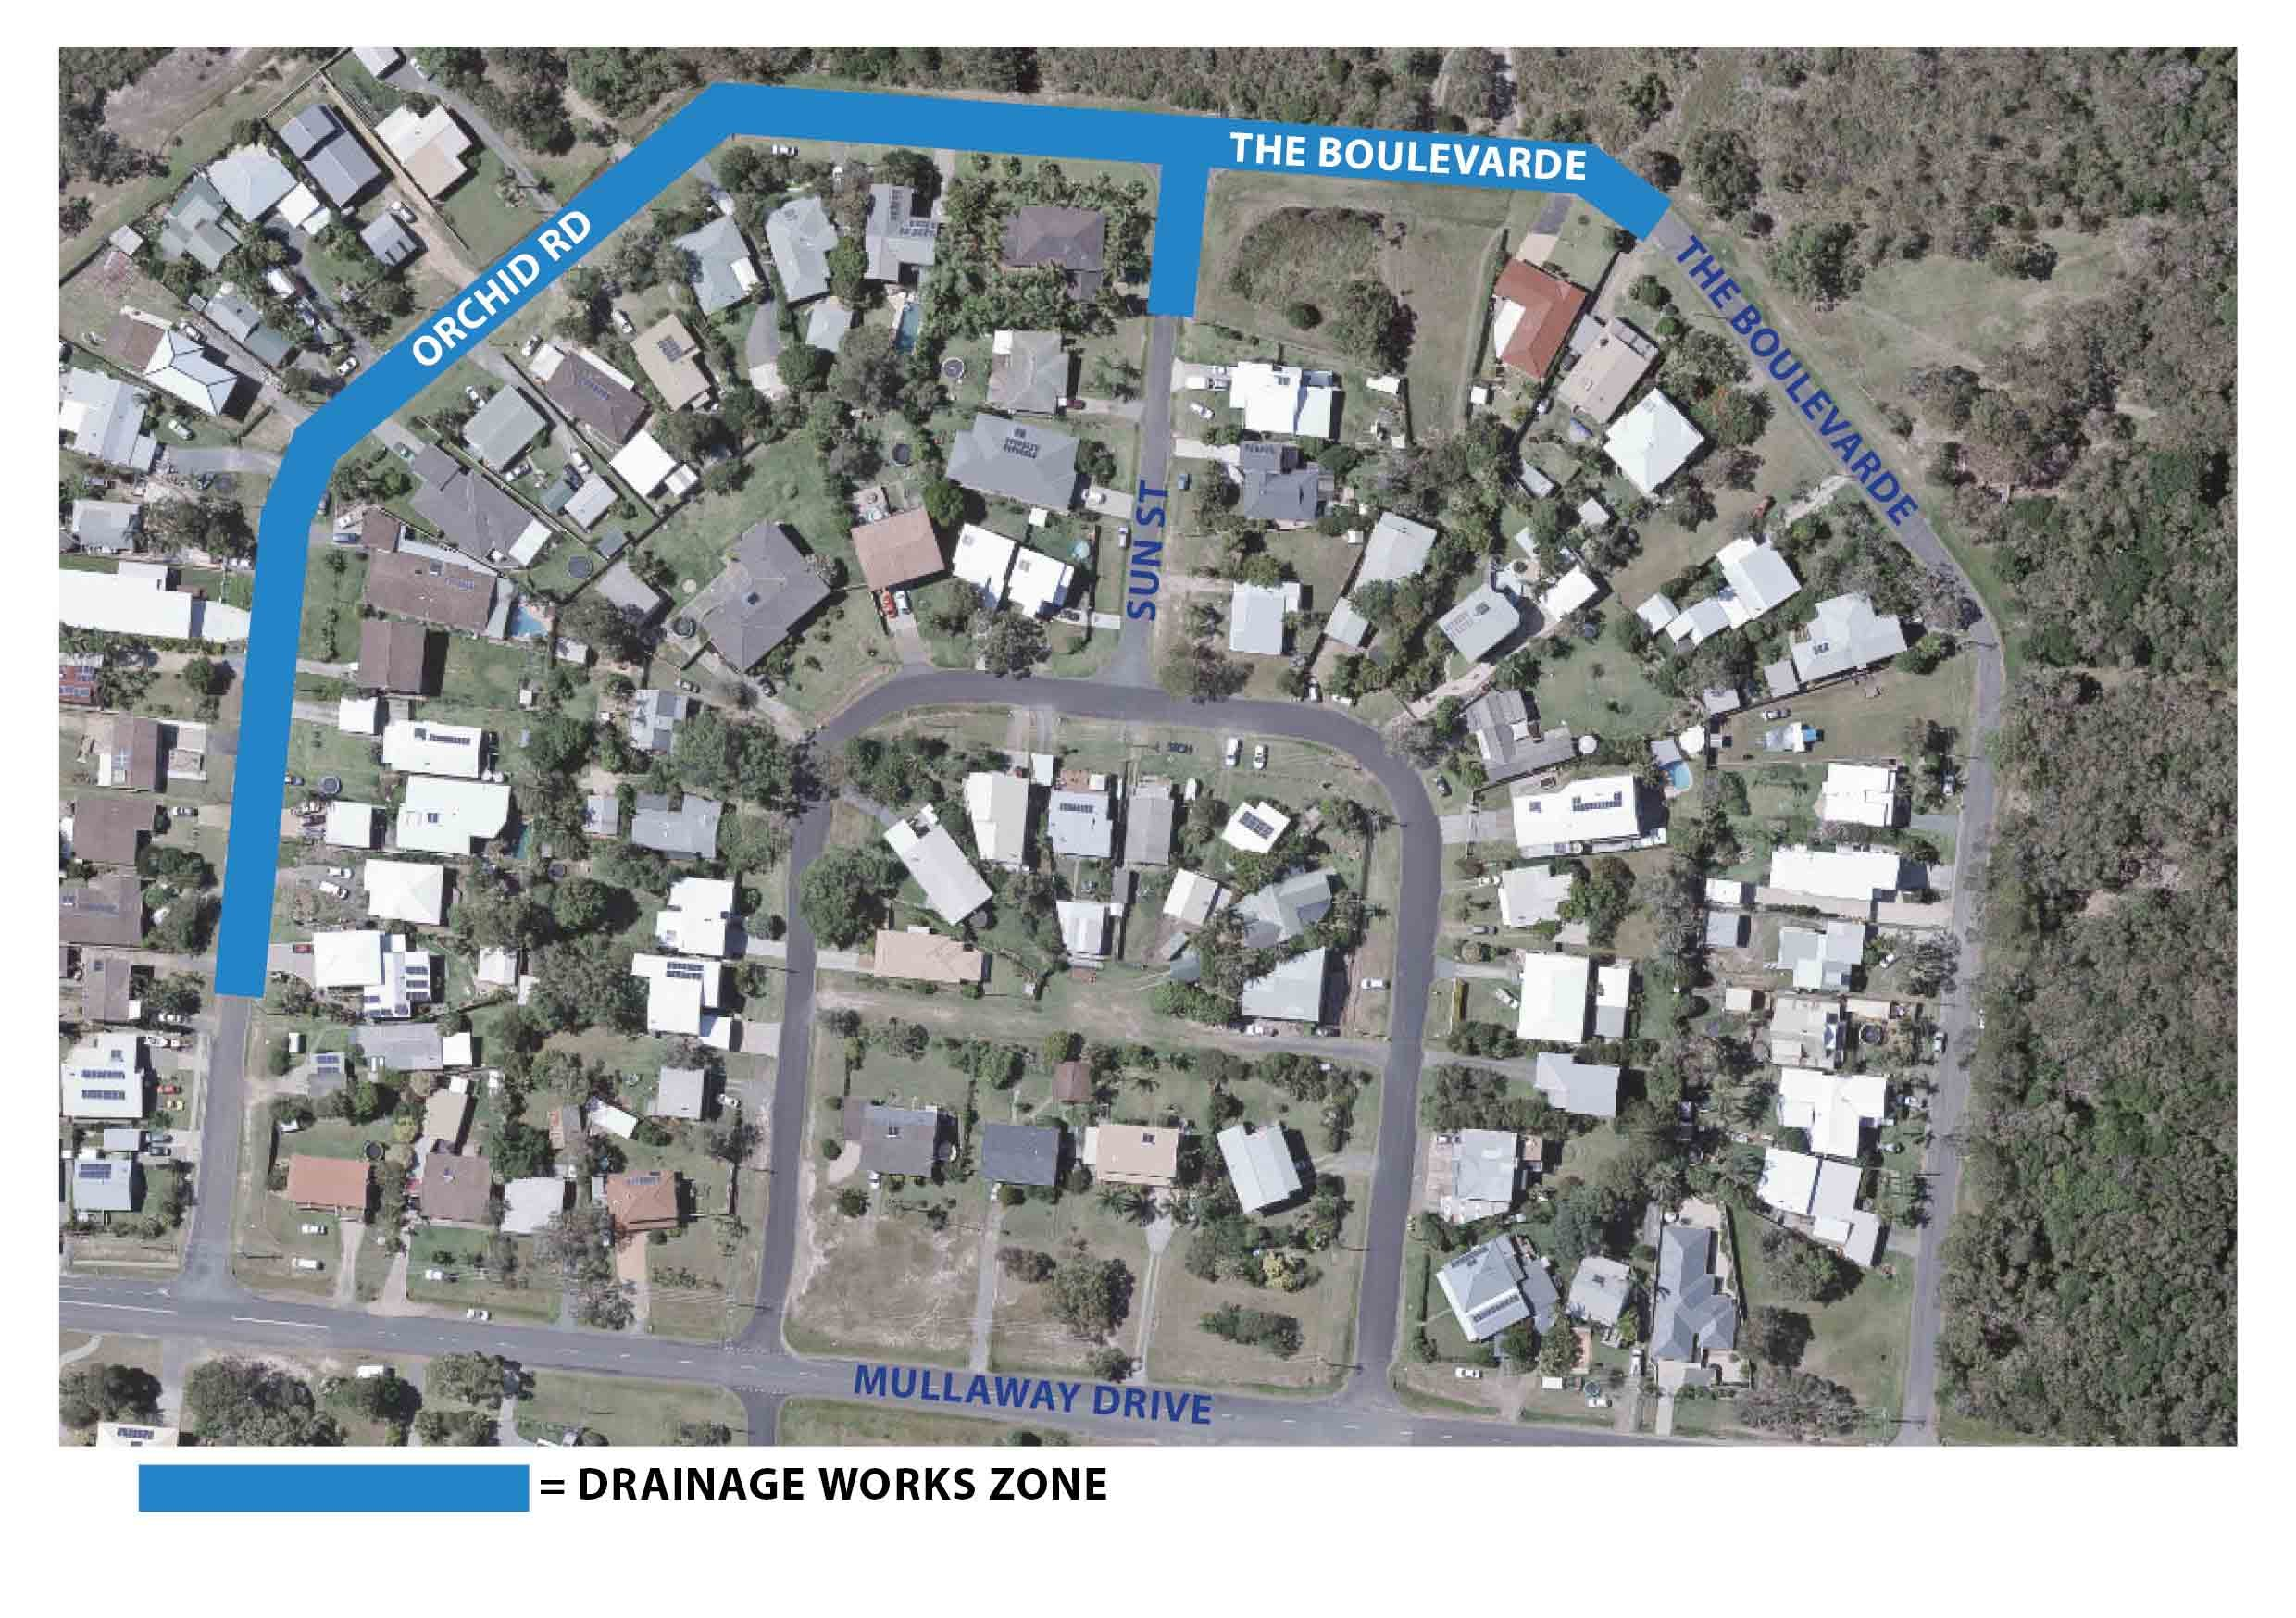 Mullaway drainage works